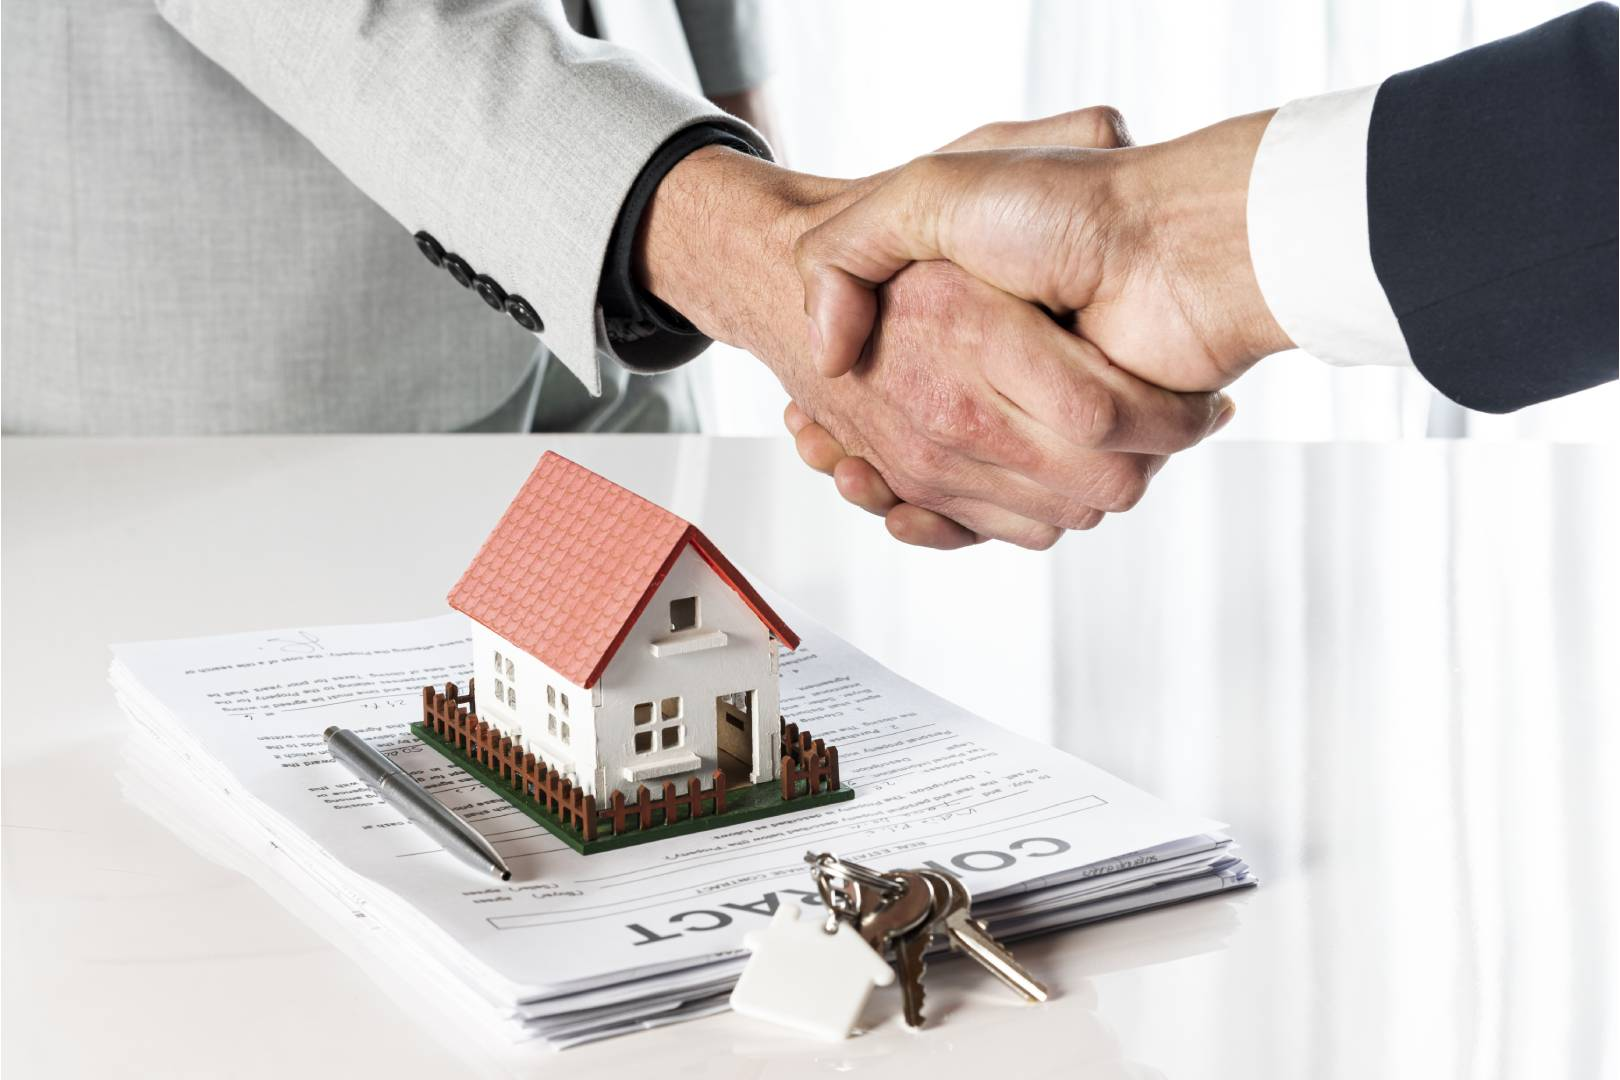 Purchasing Property From a Developer